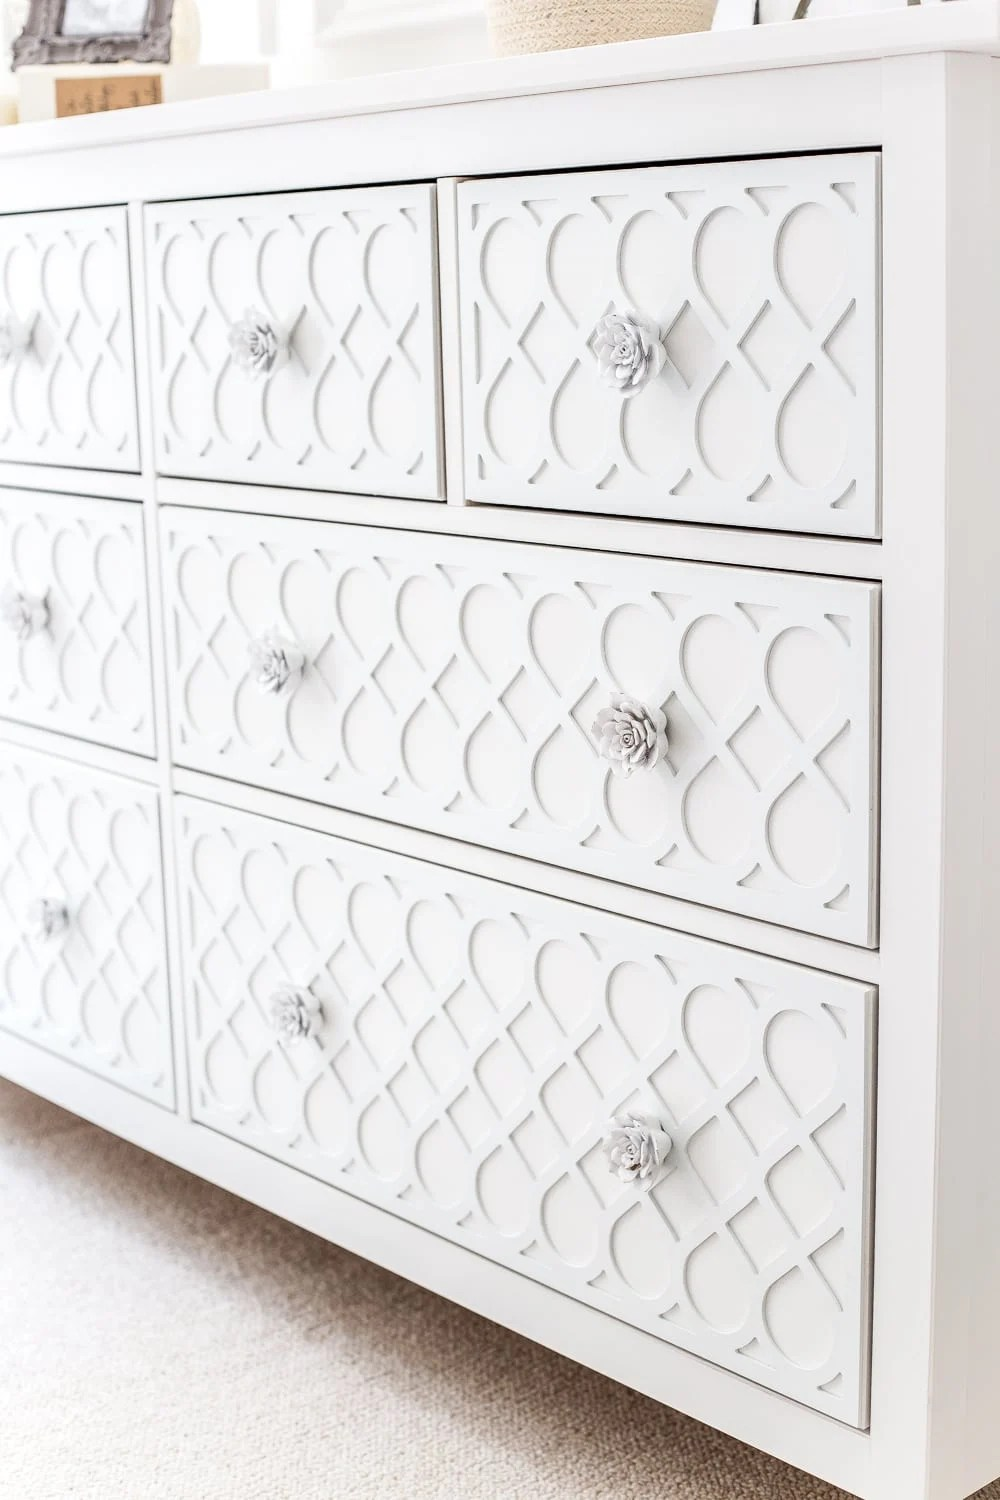 How to get a high-end carved detail look for less on a plain IKEA dresser using appliques. #IKEAhack #dresser #furnituremakeover